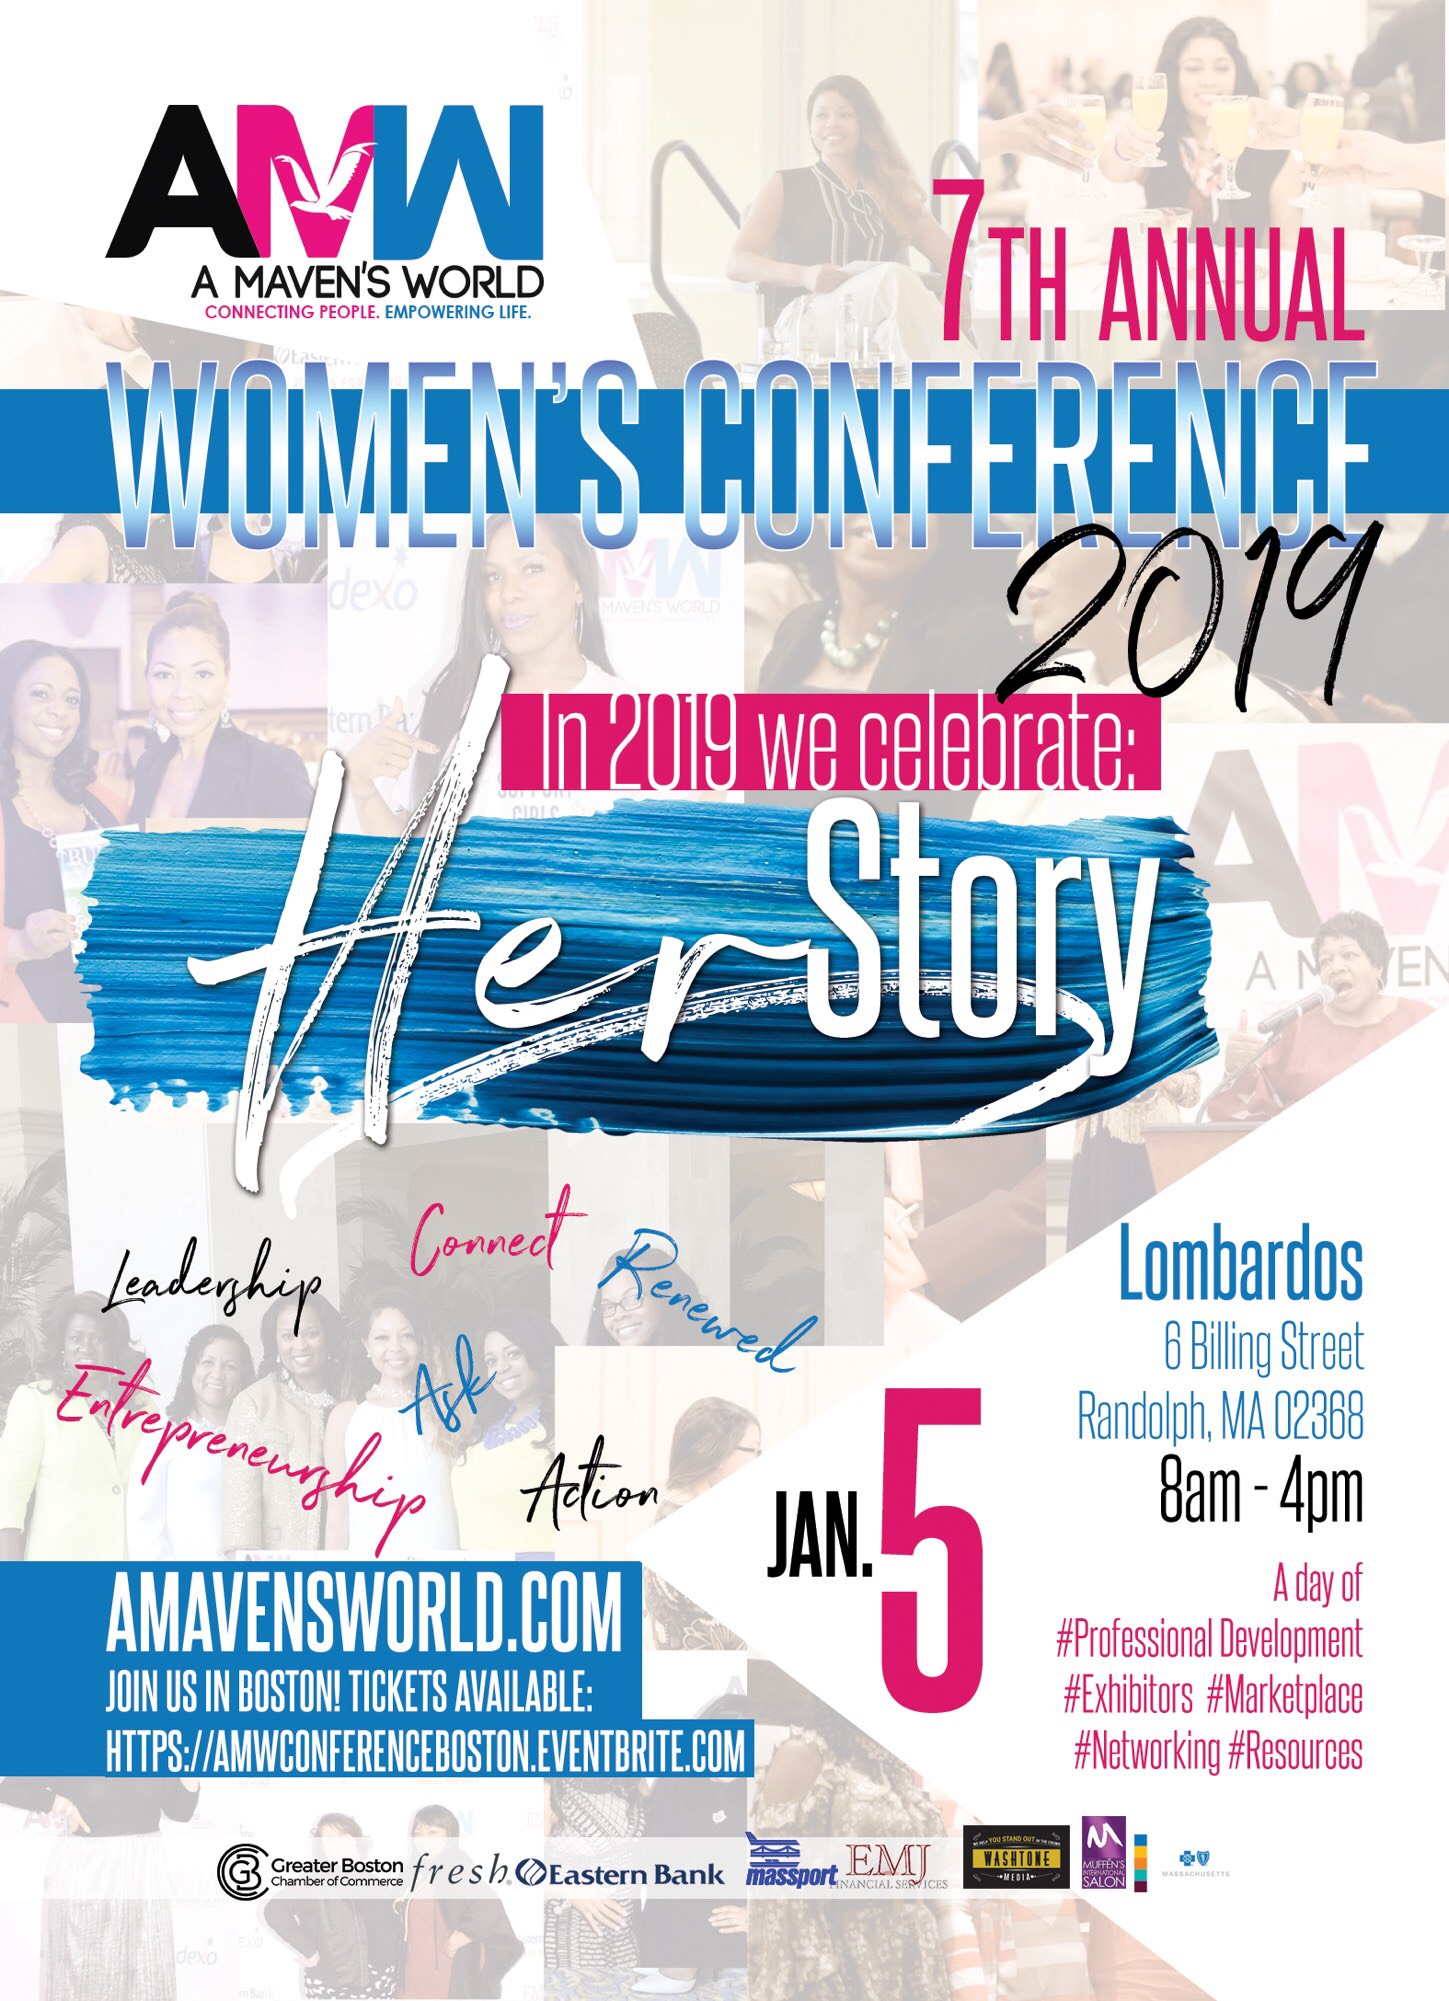 7th Annual Women's Brunch and Conference